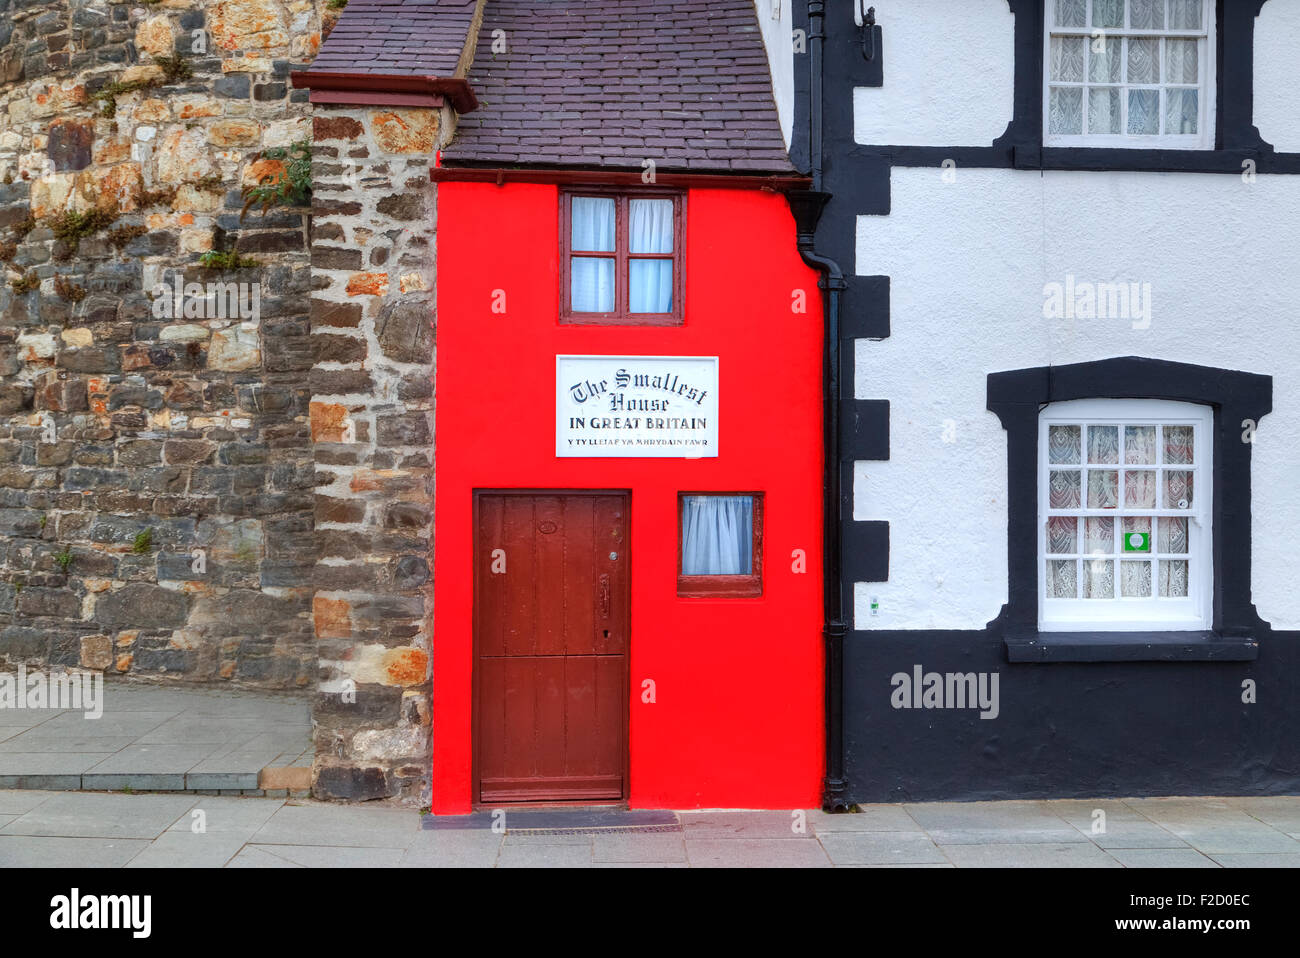 The smallest house in Great Britain, Conwy, Wales, United Kingdom; - Stock Image